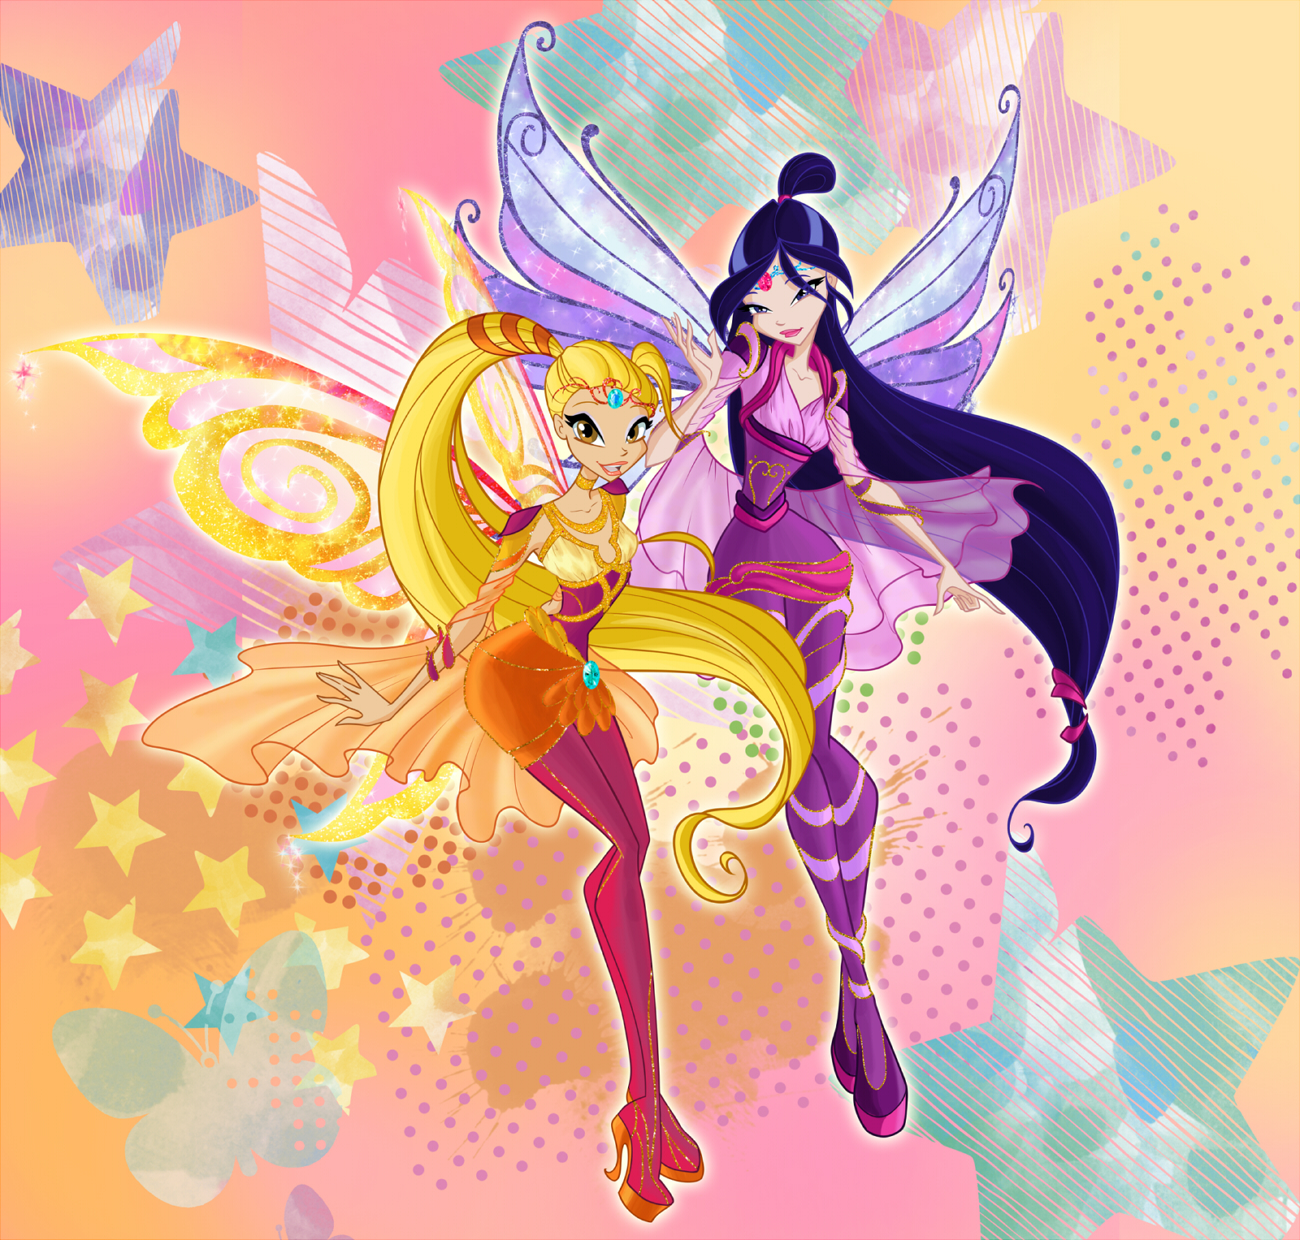 Winx club season 6 Bloomix \ Винкс 6 сезон Блумикс